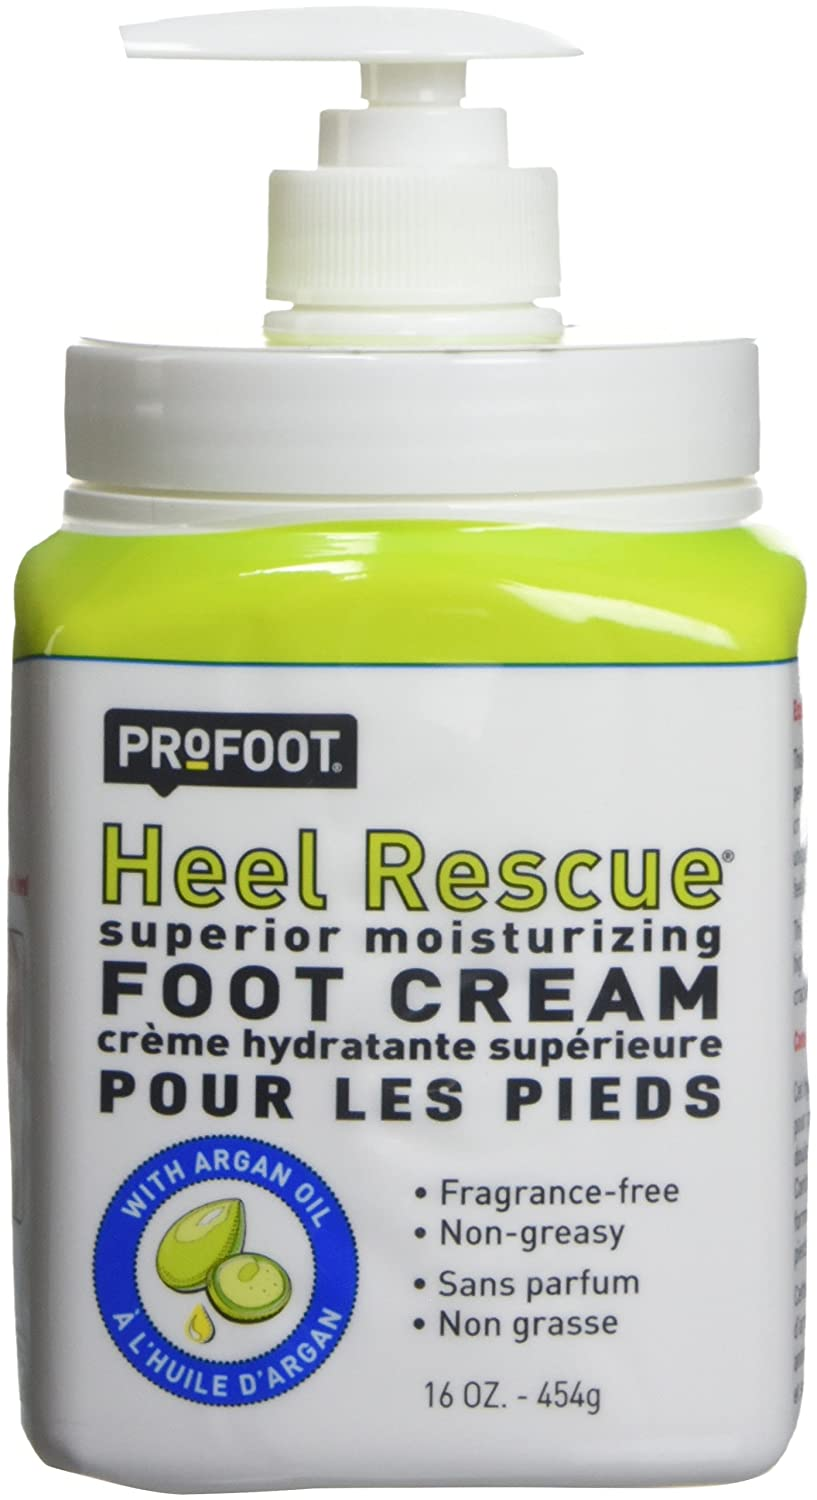 Profoot Care Heel Rescue Superior Moisturizing Foot Cream, 16 Oz by Profoot B000GCKCDW